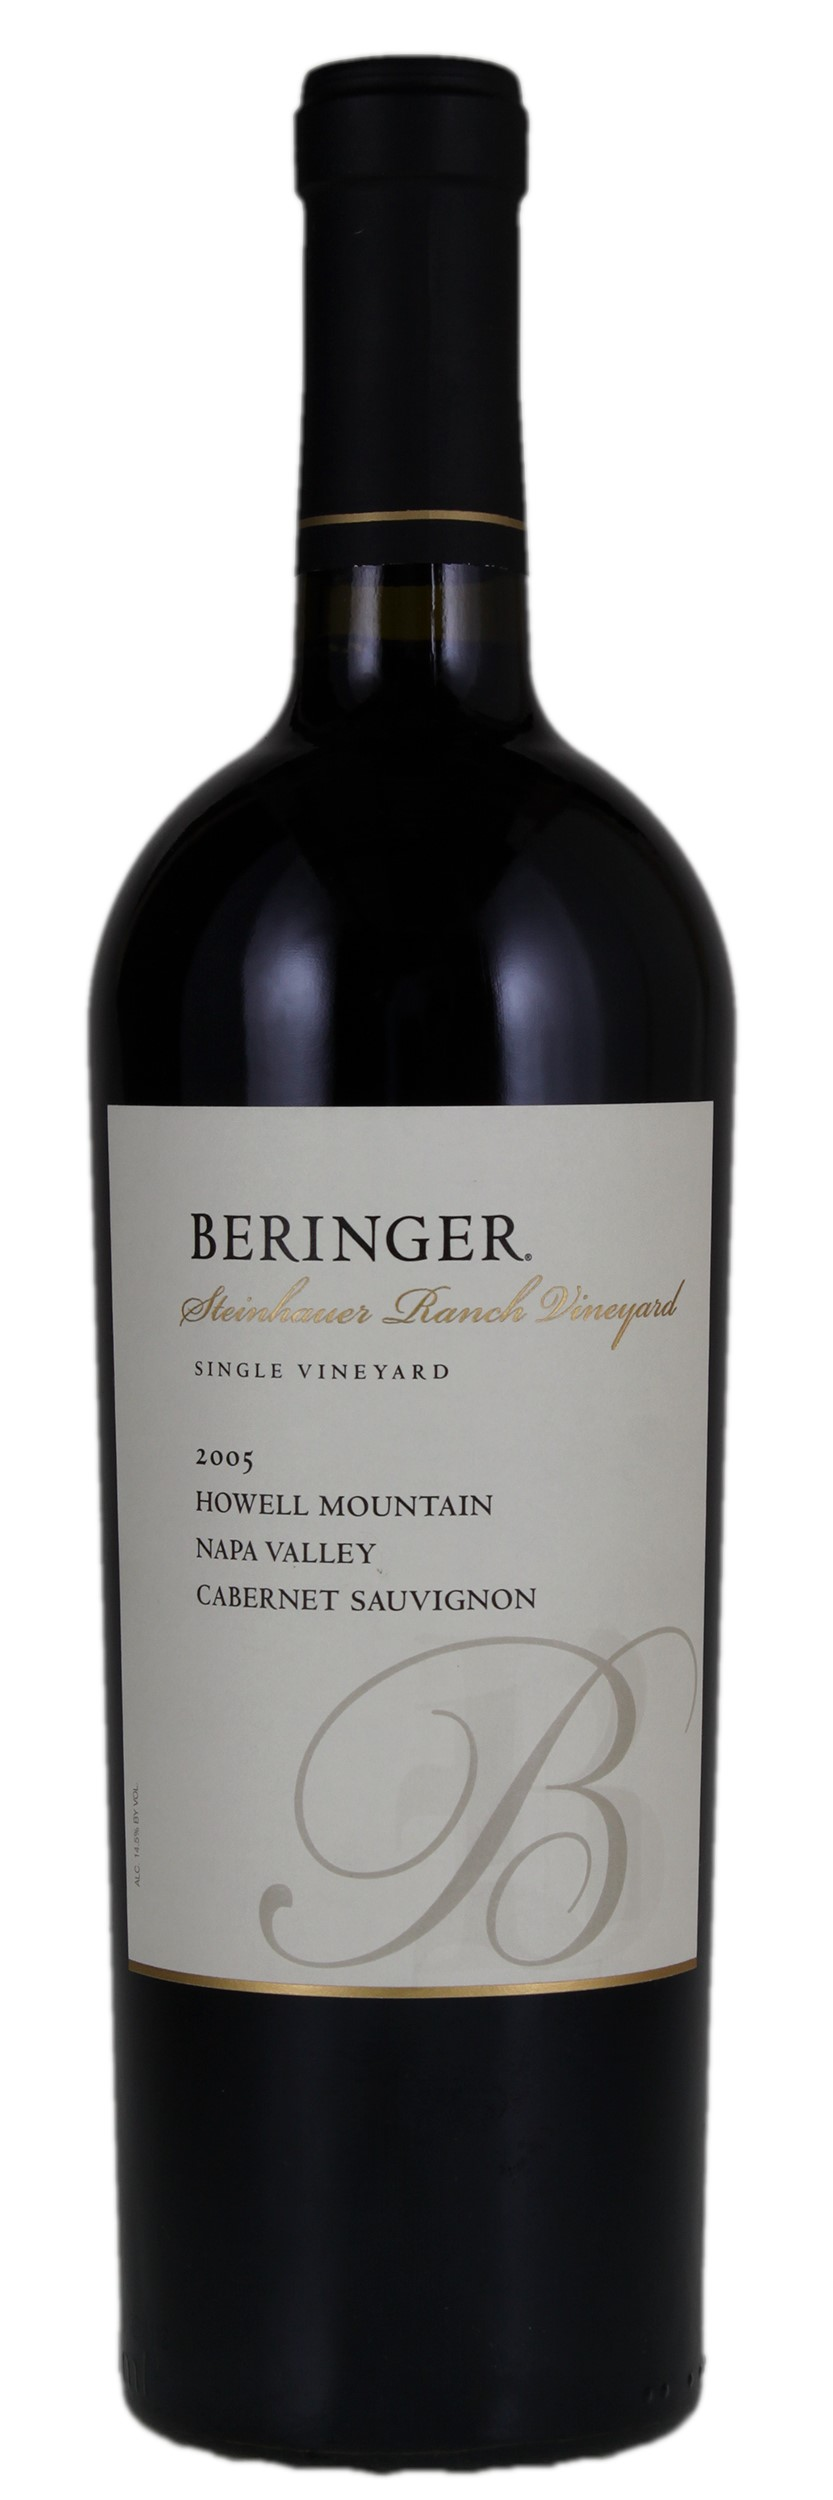 Wine Item Auction 162621 2005 Beringer Steinhauer Ranch Cabernet Sauvignon